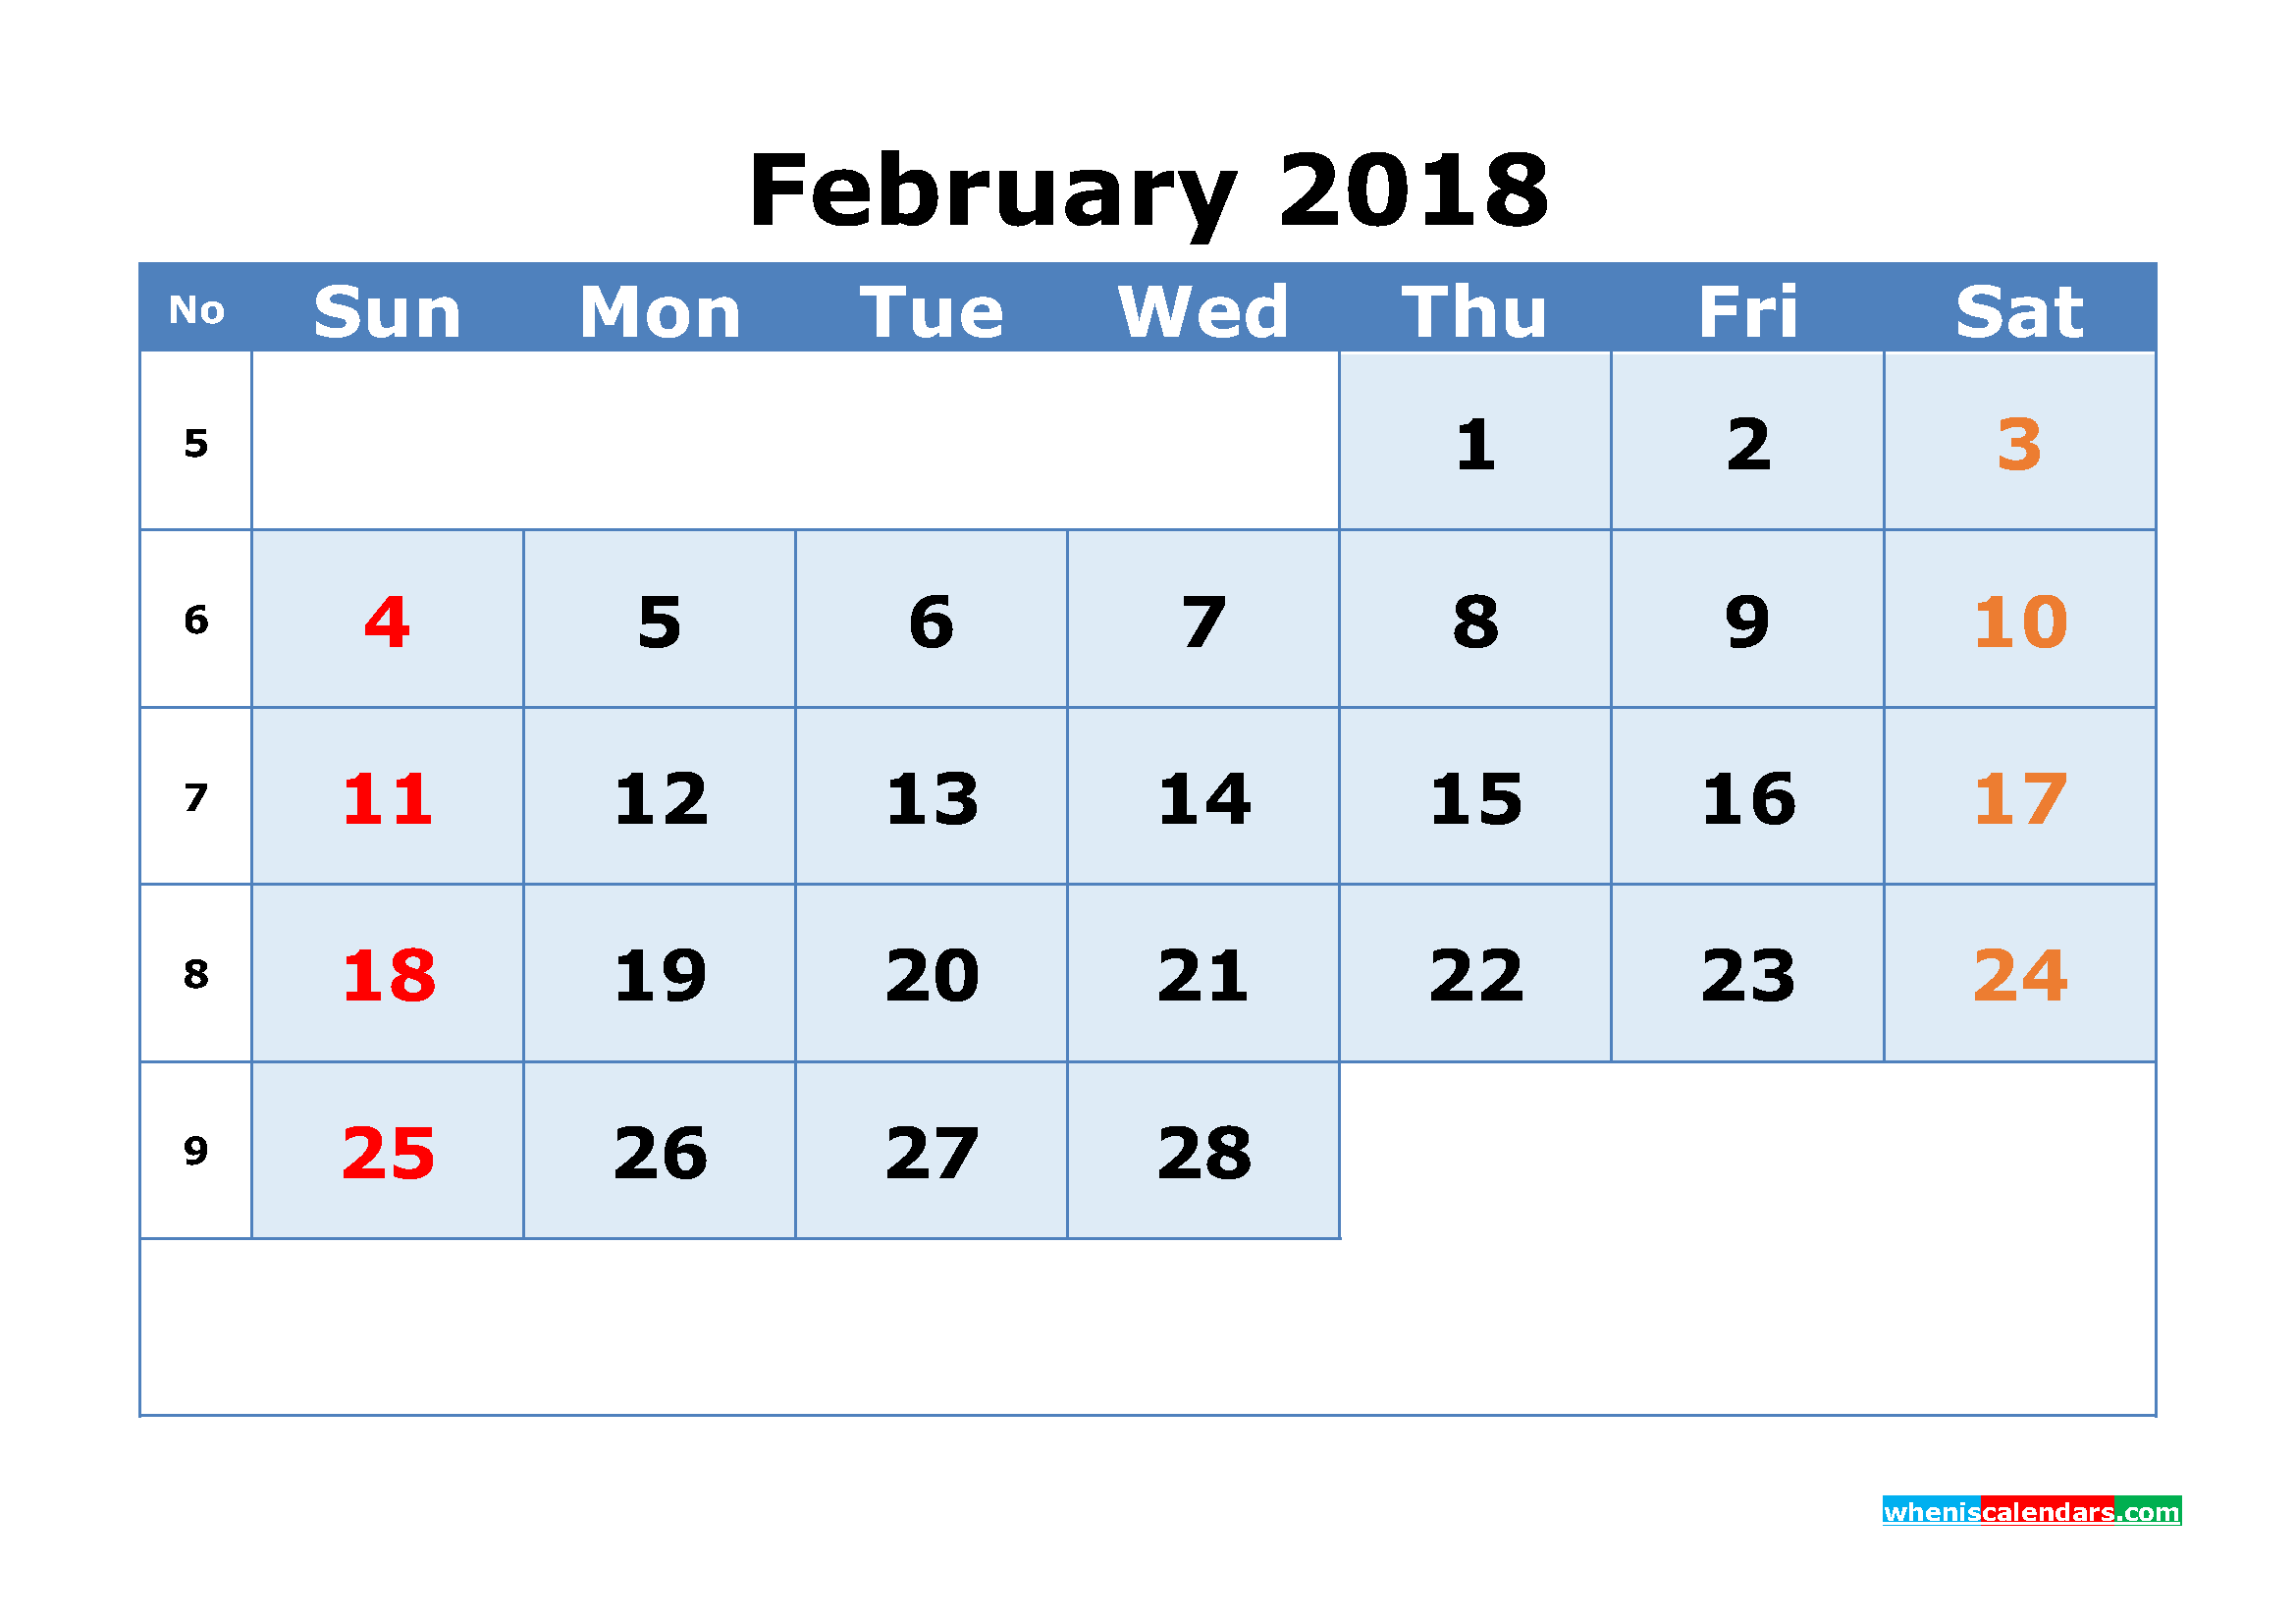 Printable Calendar February 2018 with Week Numbers as, Image